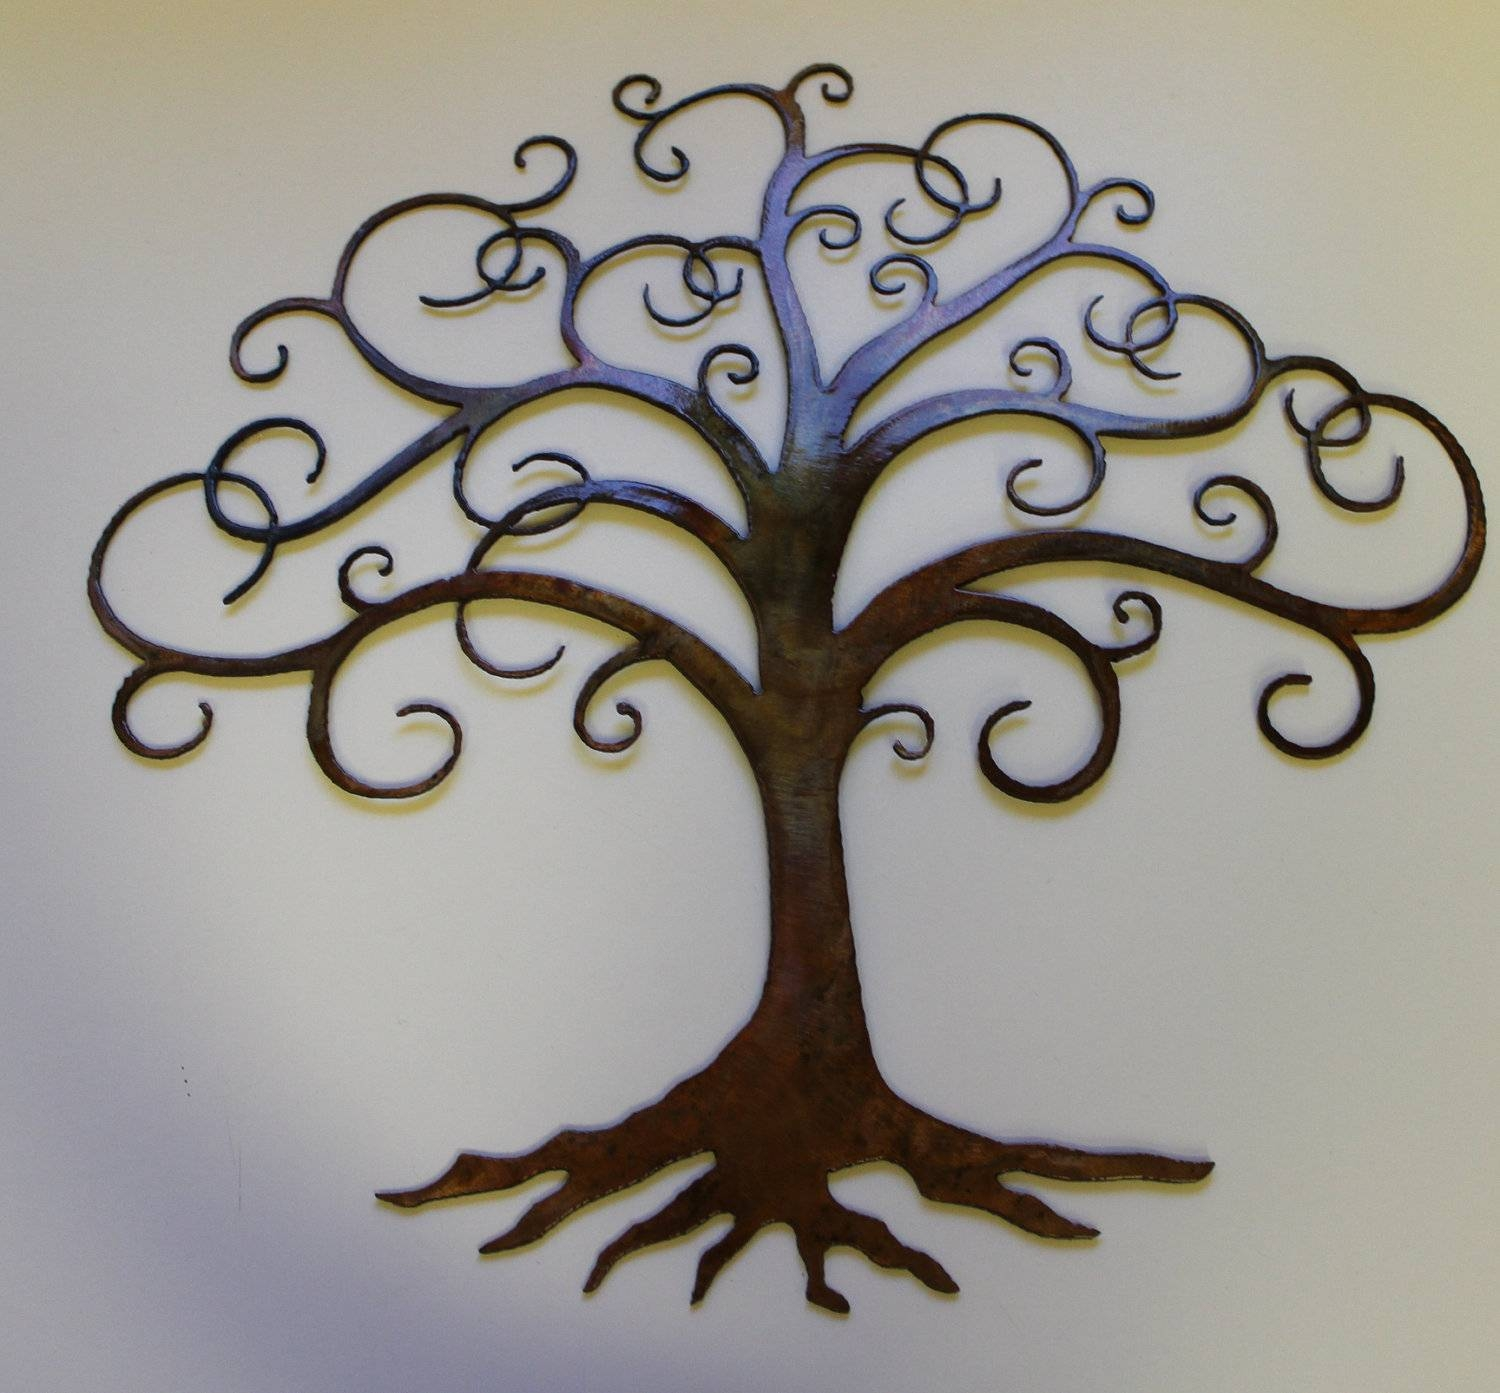 Wall Art Designs: Metal Wall Art Trees Breathtaking Large Metal Throughout Best And Newest Metal Wall Art Tree (View 20 of 20)